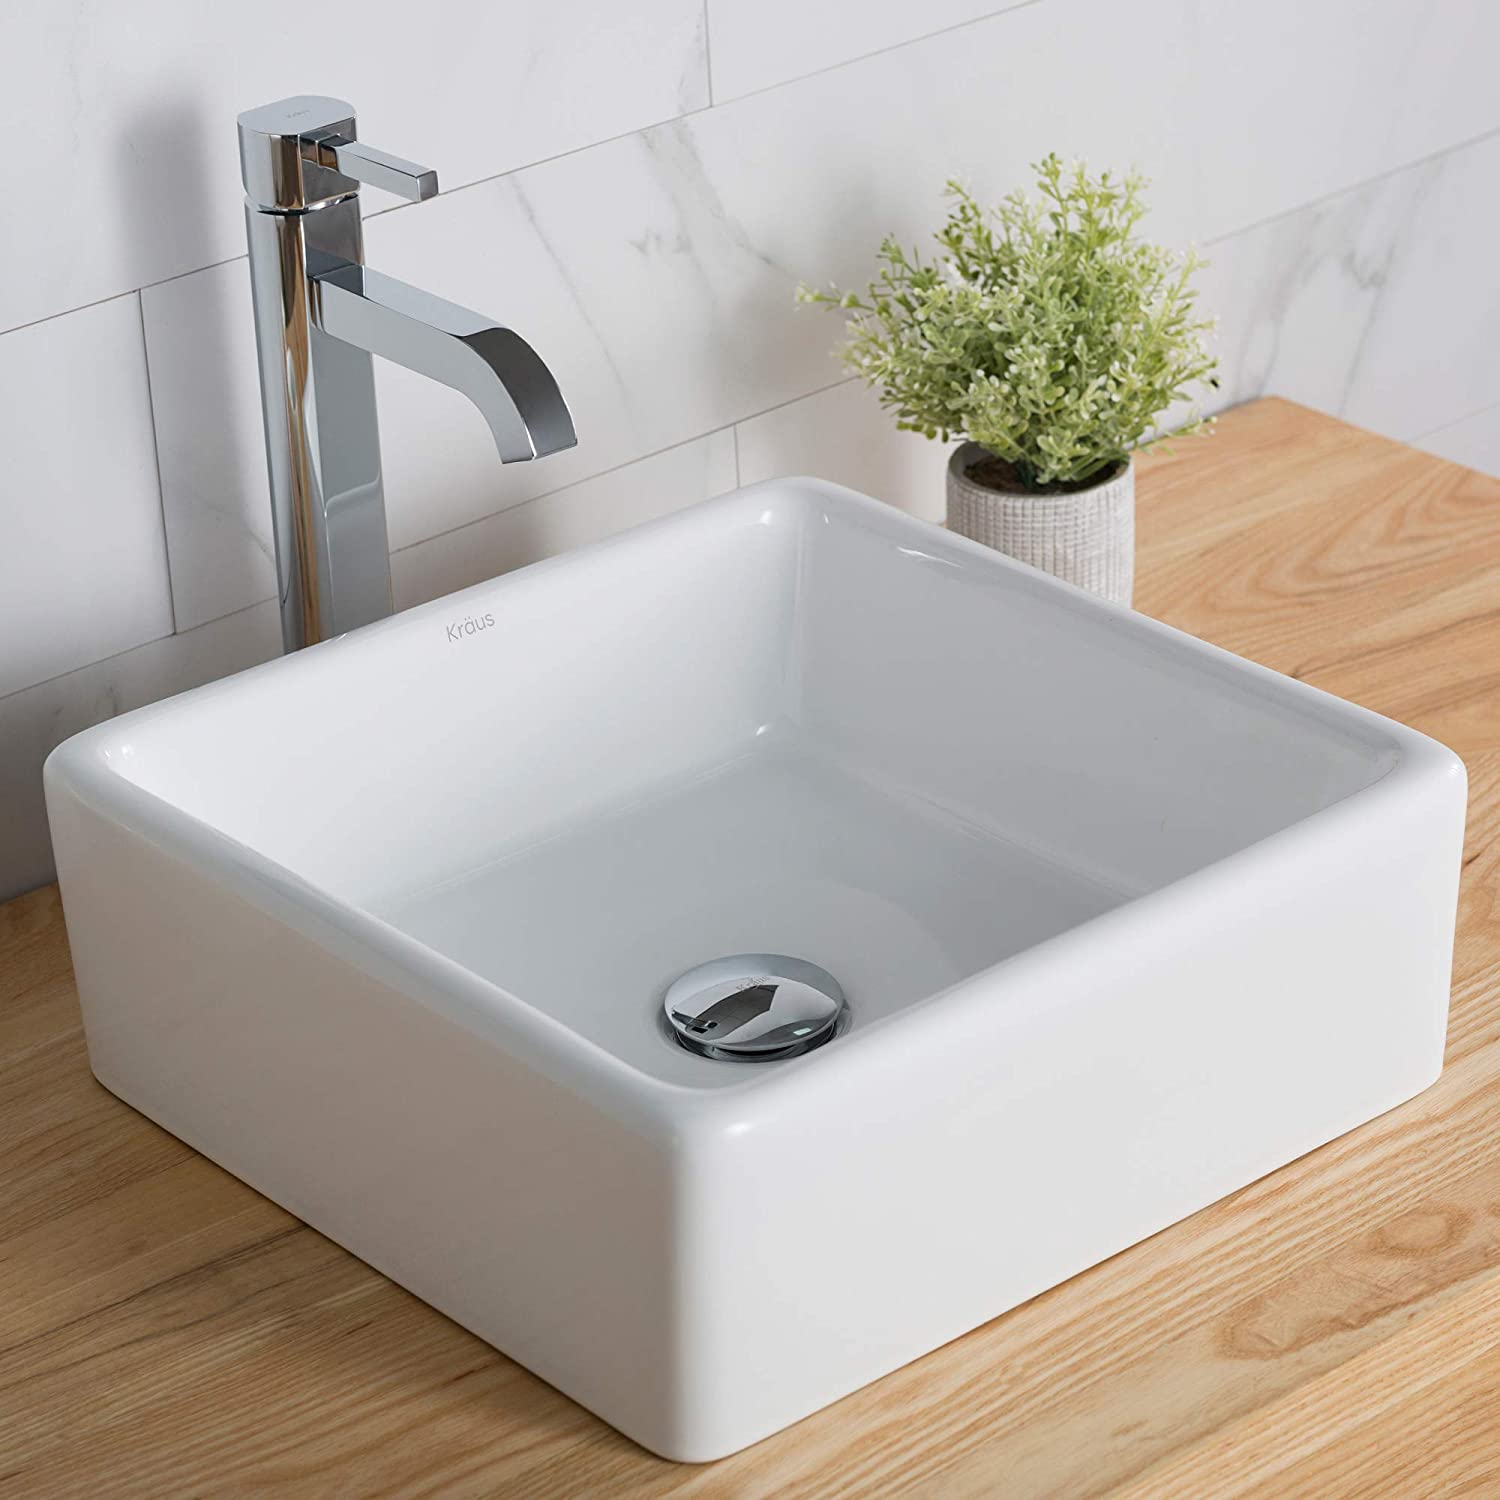 Kraus C-KCV-120-1007CH White Square Ceramic Sink and Ramus Faucet Chrome